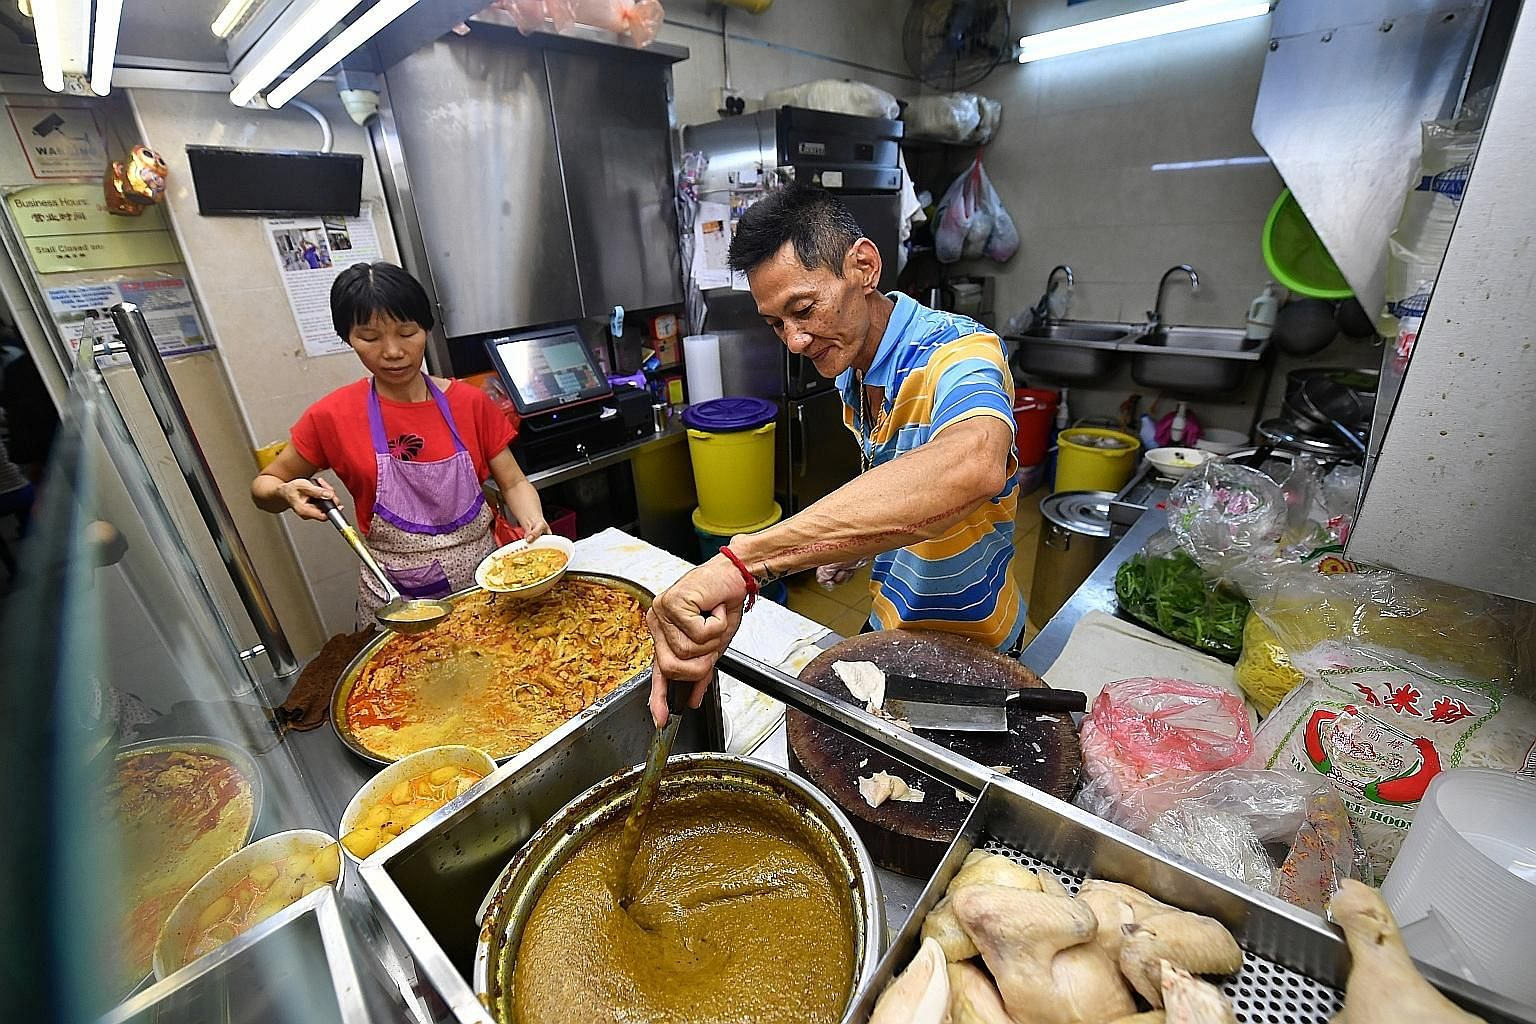 Hock Hai (Hong Lim)'s curry chicken noodle dish (left). Two of the new entrants on the list are based at Bedok Interchange Hawker Centre - Bedok Chwee Kueh (above) and Hock Hai (Hong Lim) Curry Chicken Noodle (left). Both stalls had constant queues y